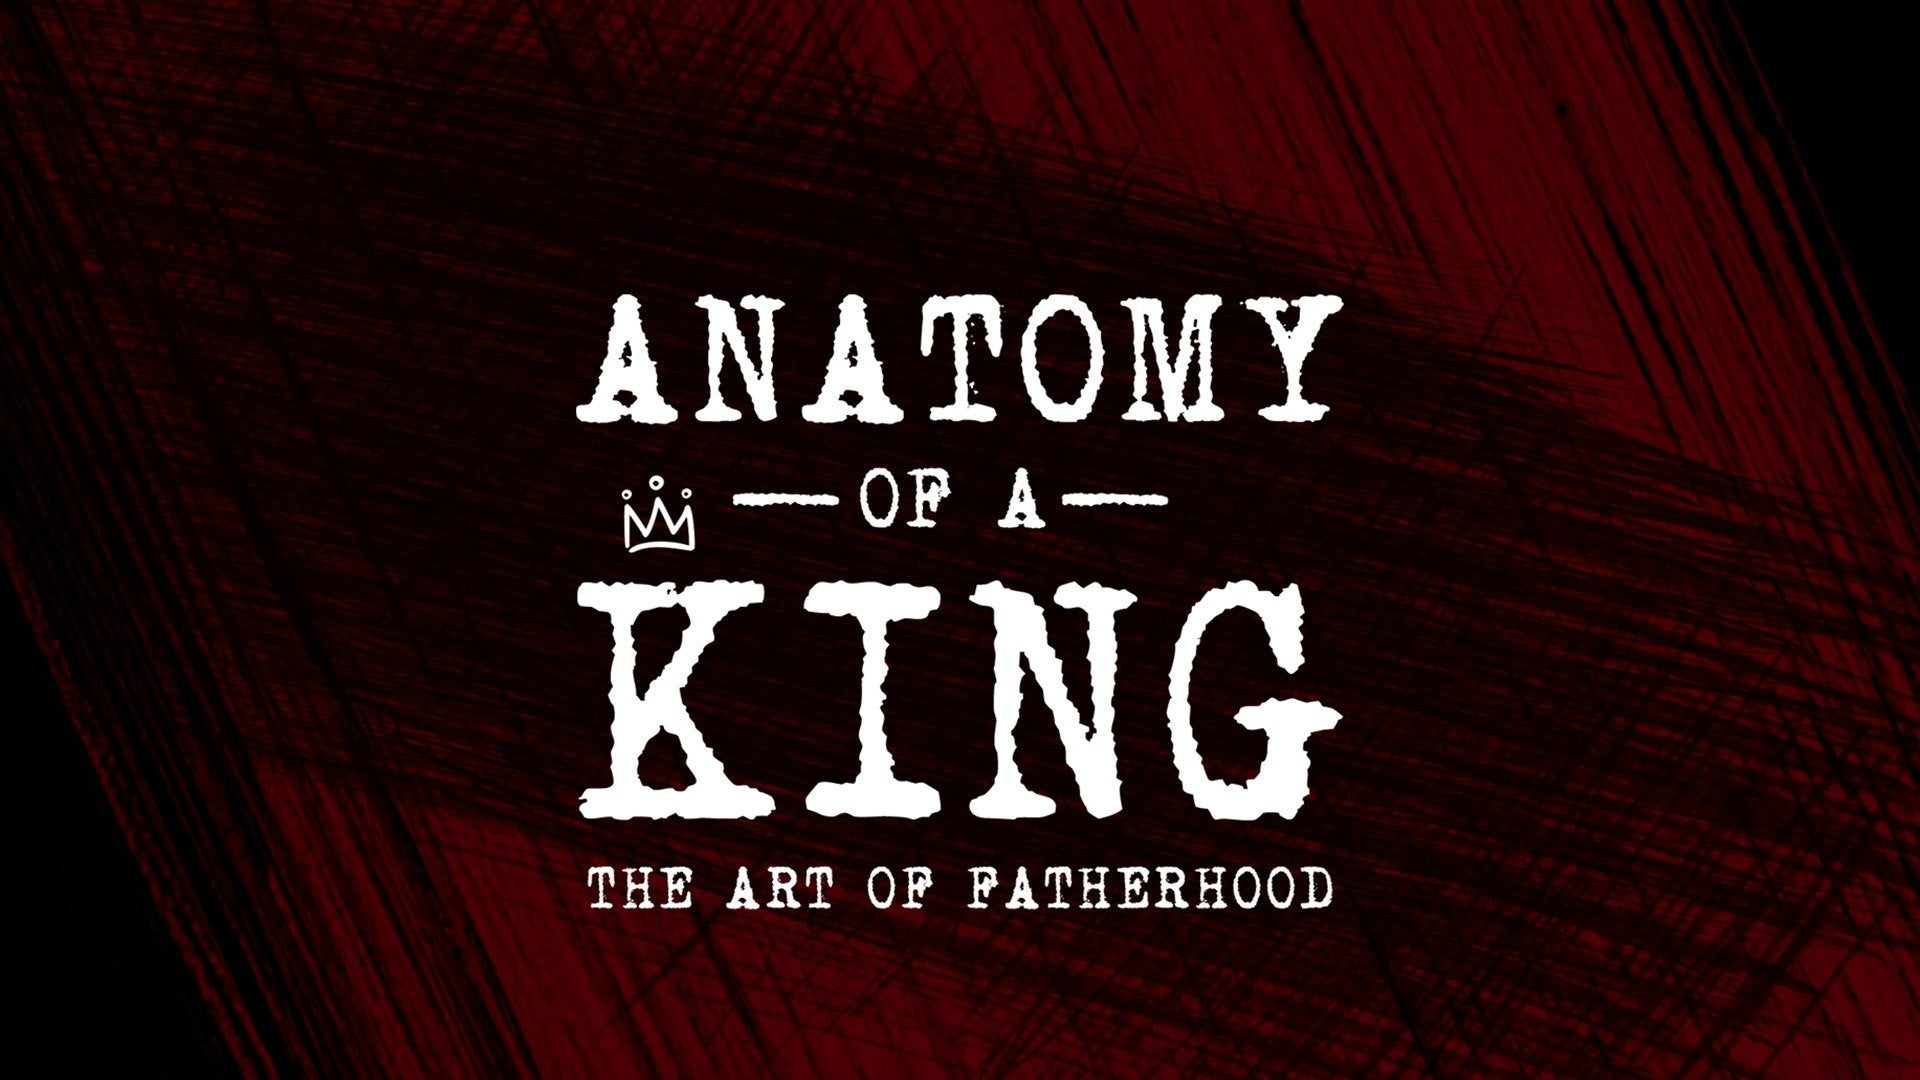 Anatomy of a King: The Art of Fatherhood